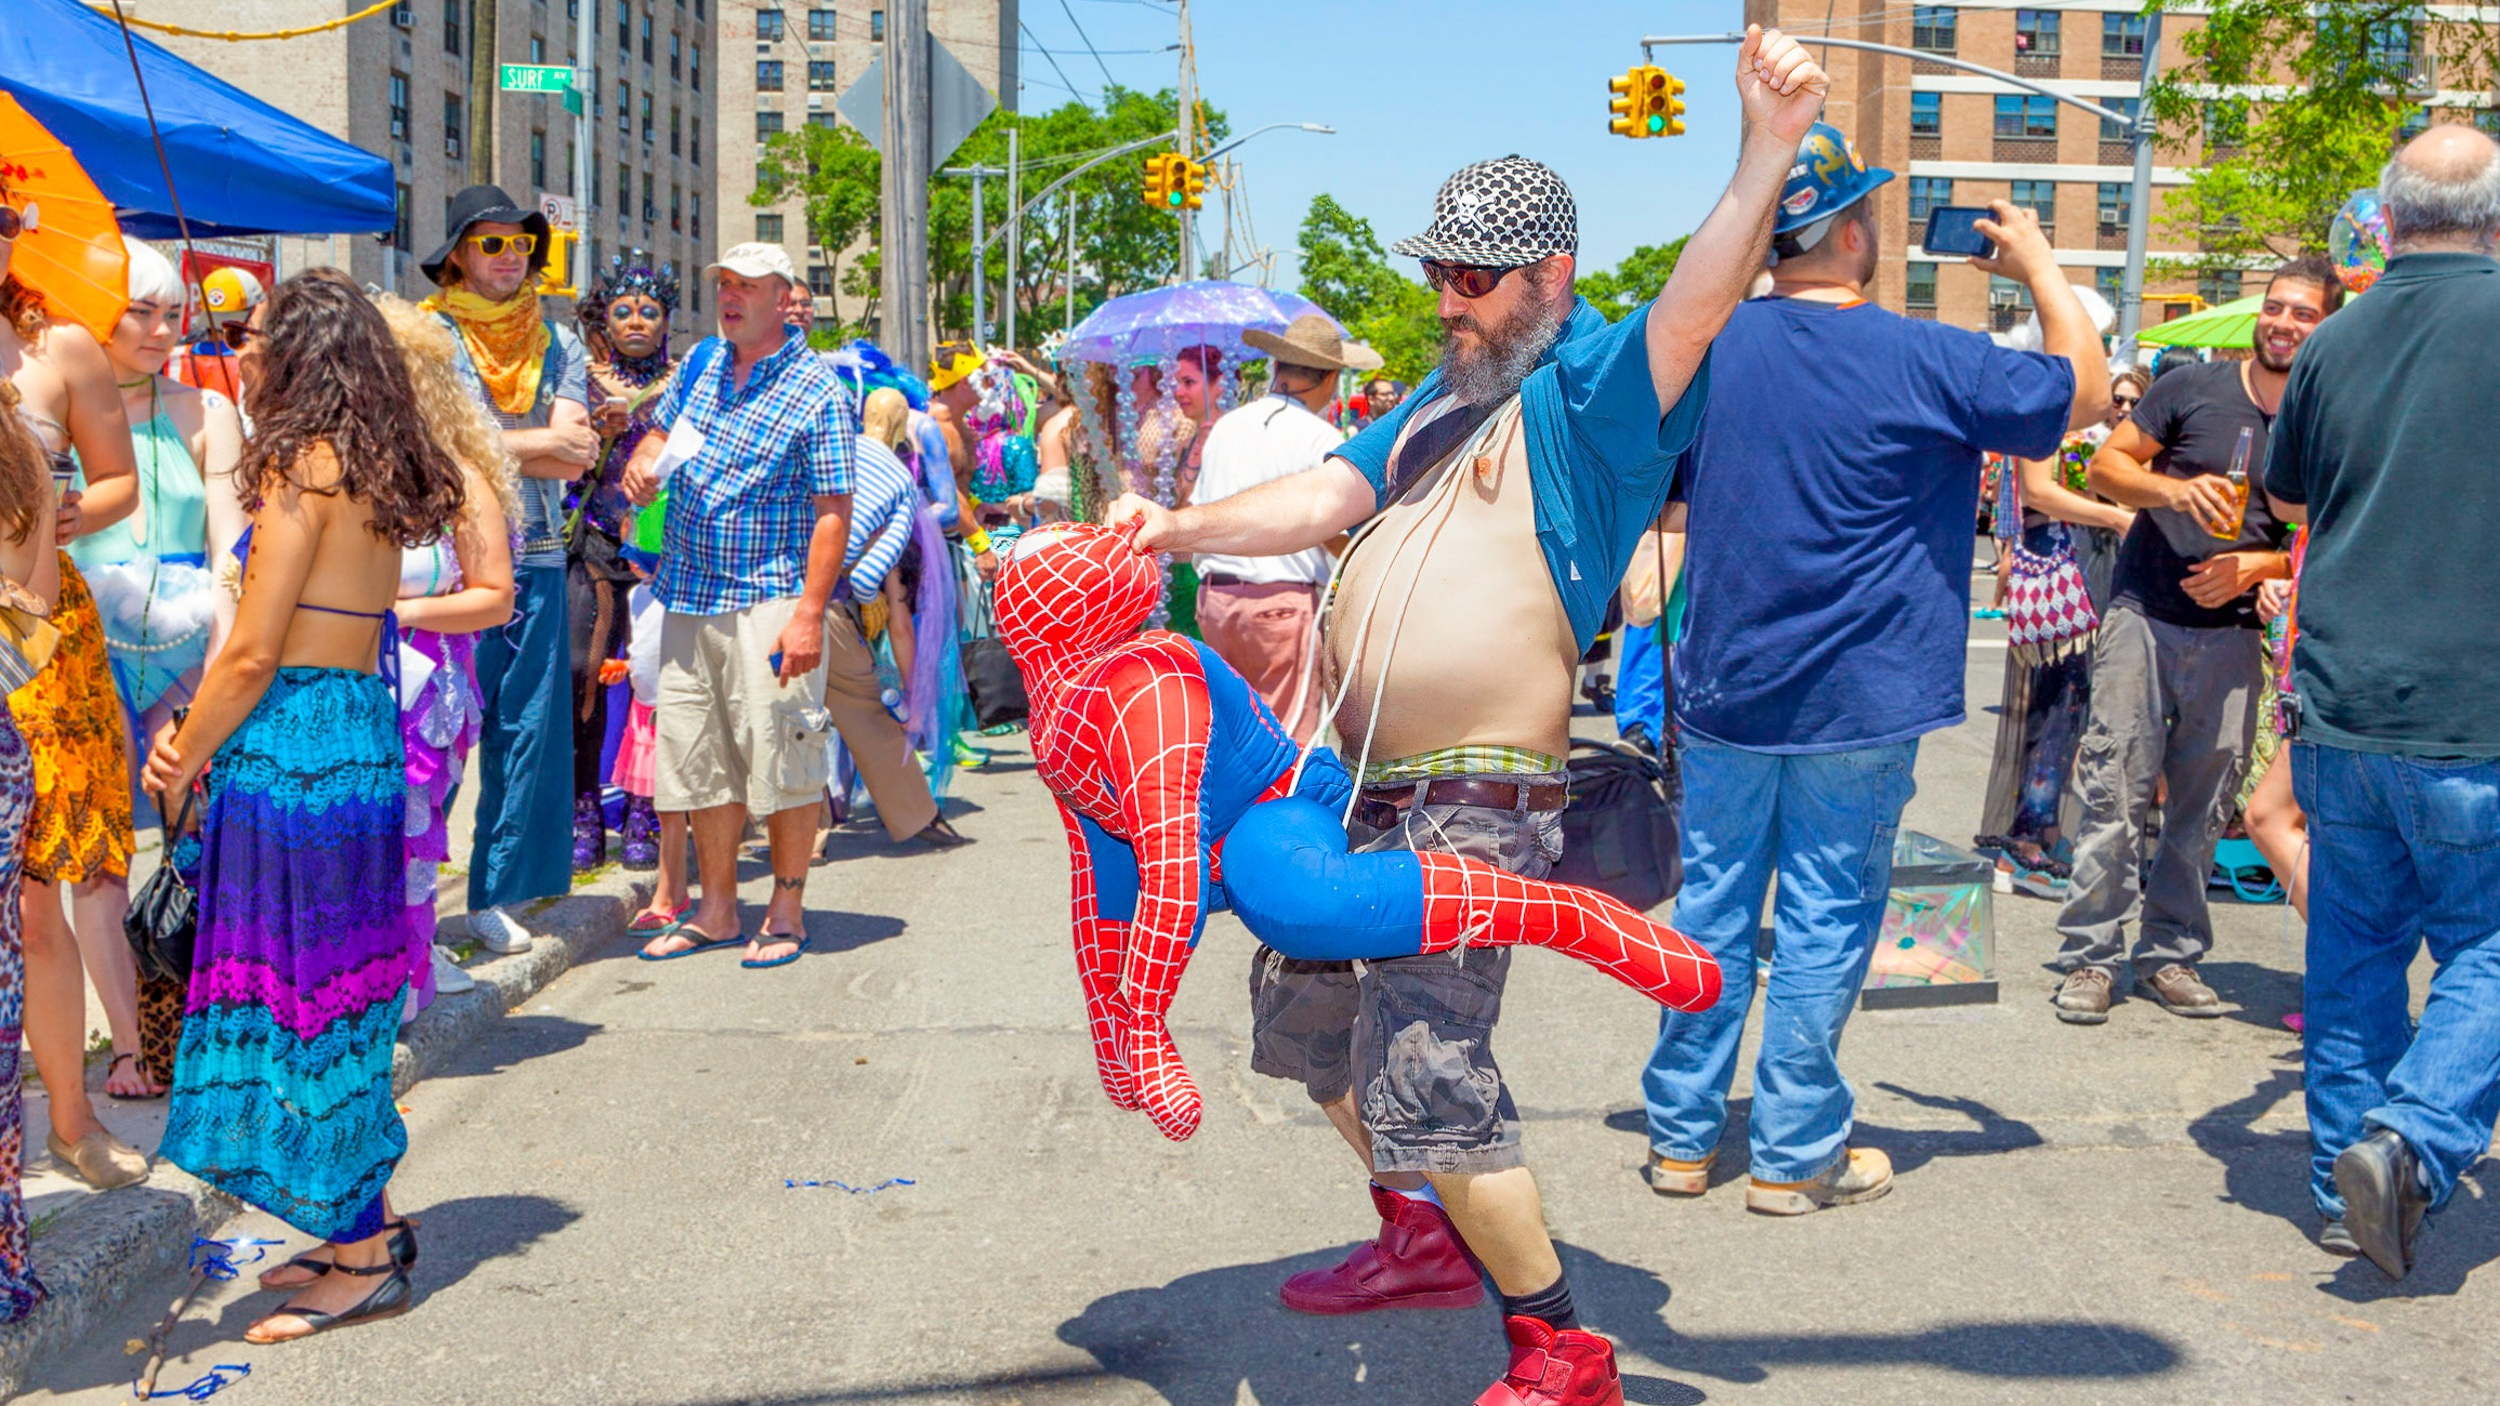 160618NYp_180921_SpiderManMer_9686_Bk01.jpg